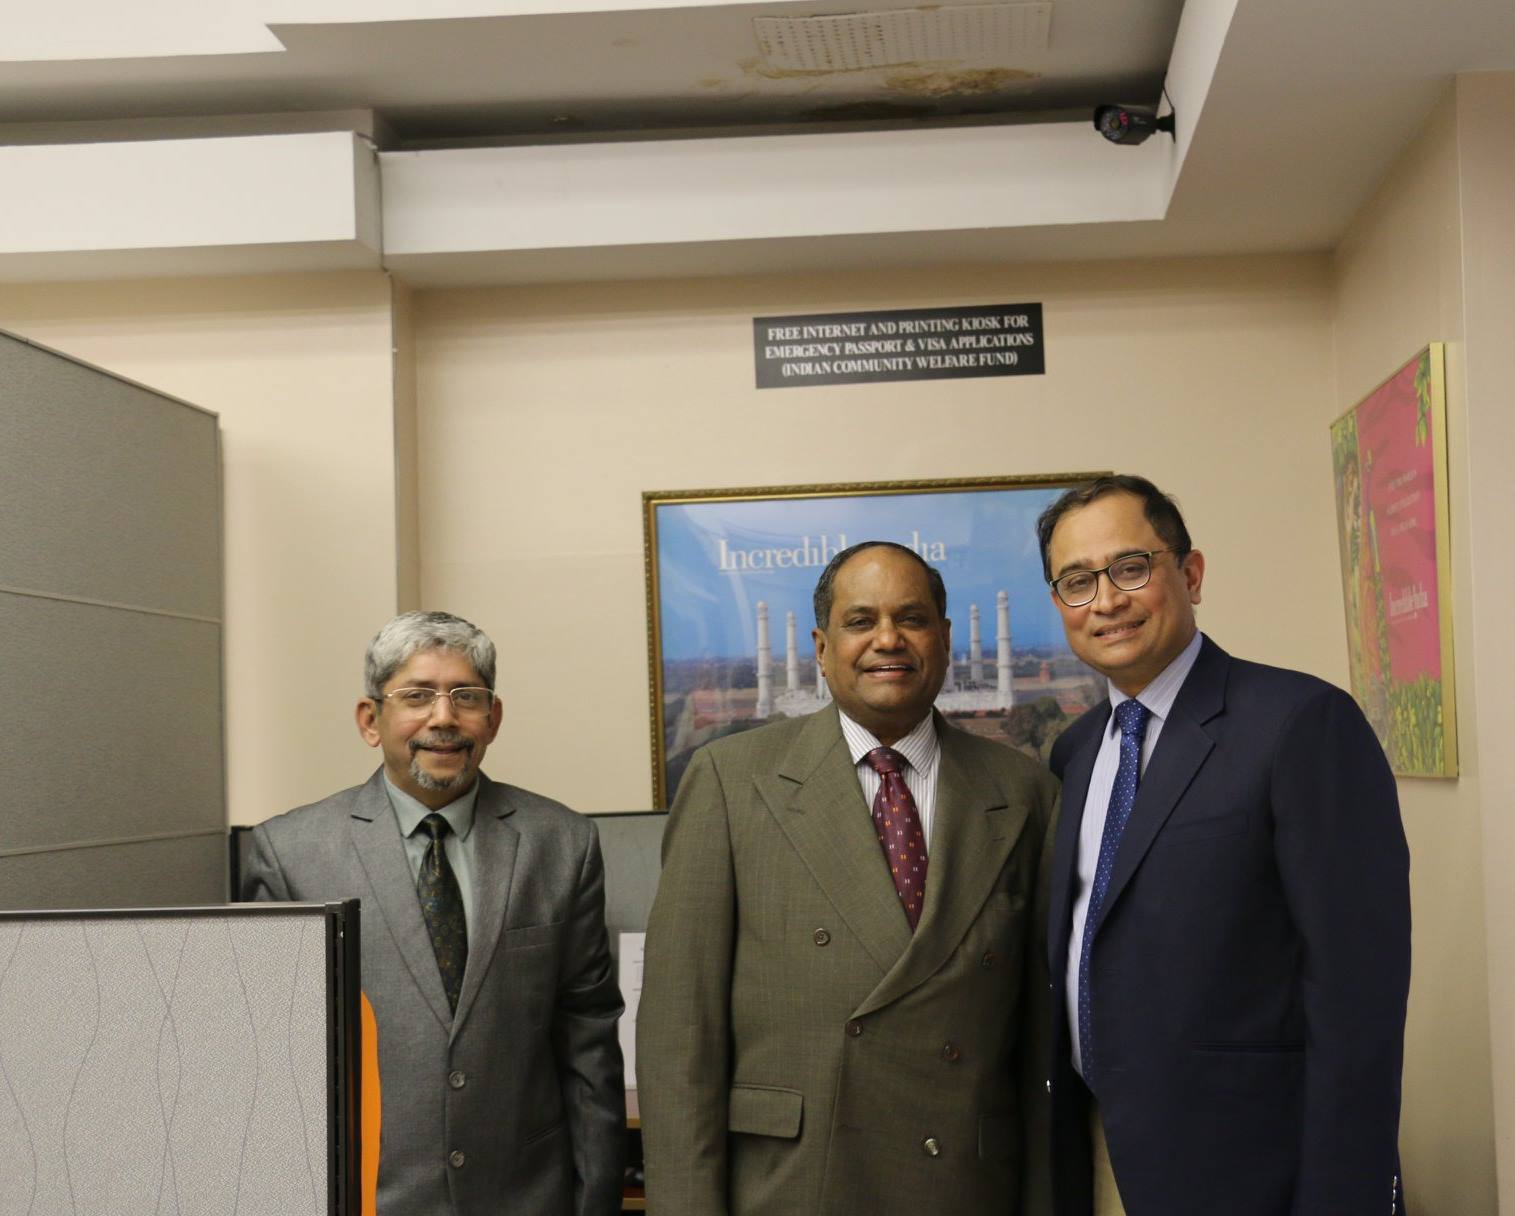 Dr thomas Abraham (centre) at the Indian Consulate in New York with Consul-General of India Sandeep Chakravorty (right) at the inauguration of the . Photo courtesy: CGI, New York